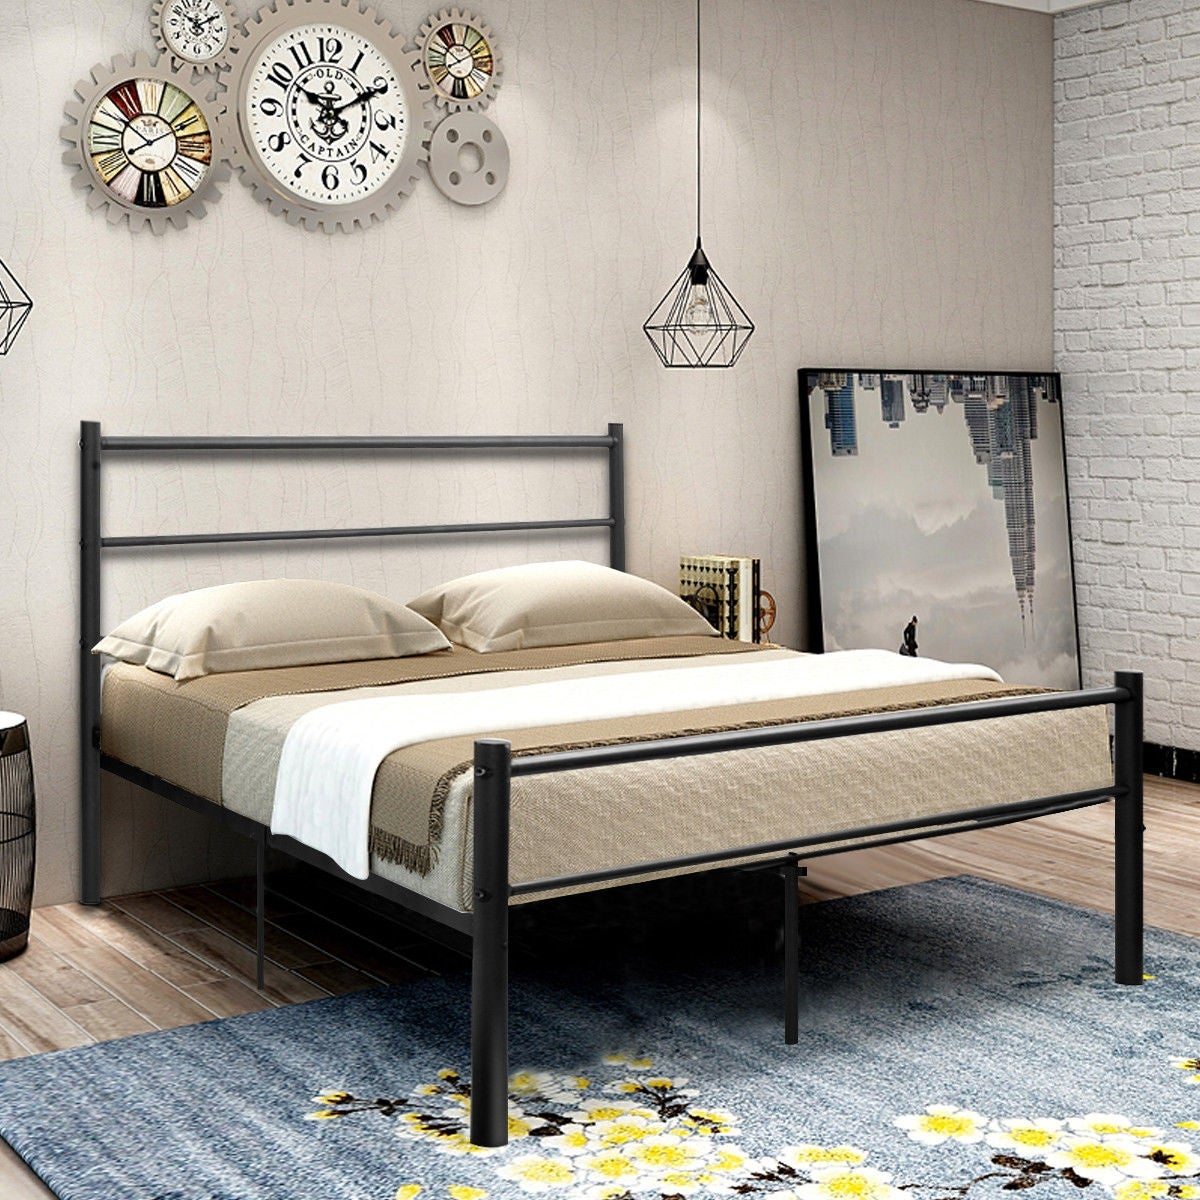 Shop costway black full size metal bed frame platform headboard 10 legs furniture free shipping today overstock com 20445716